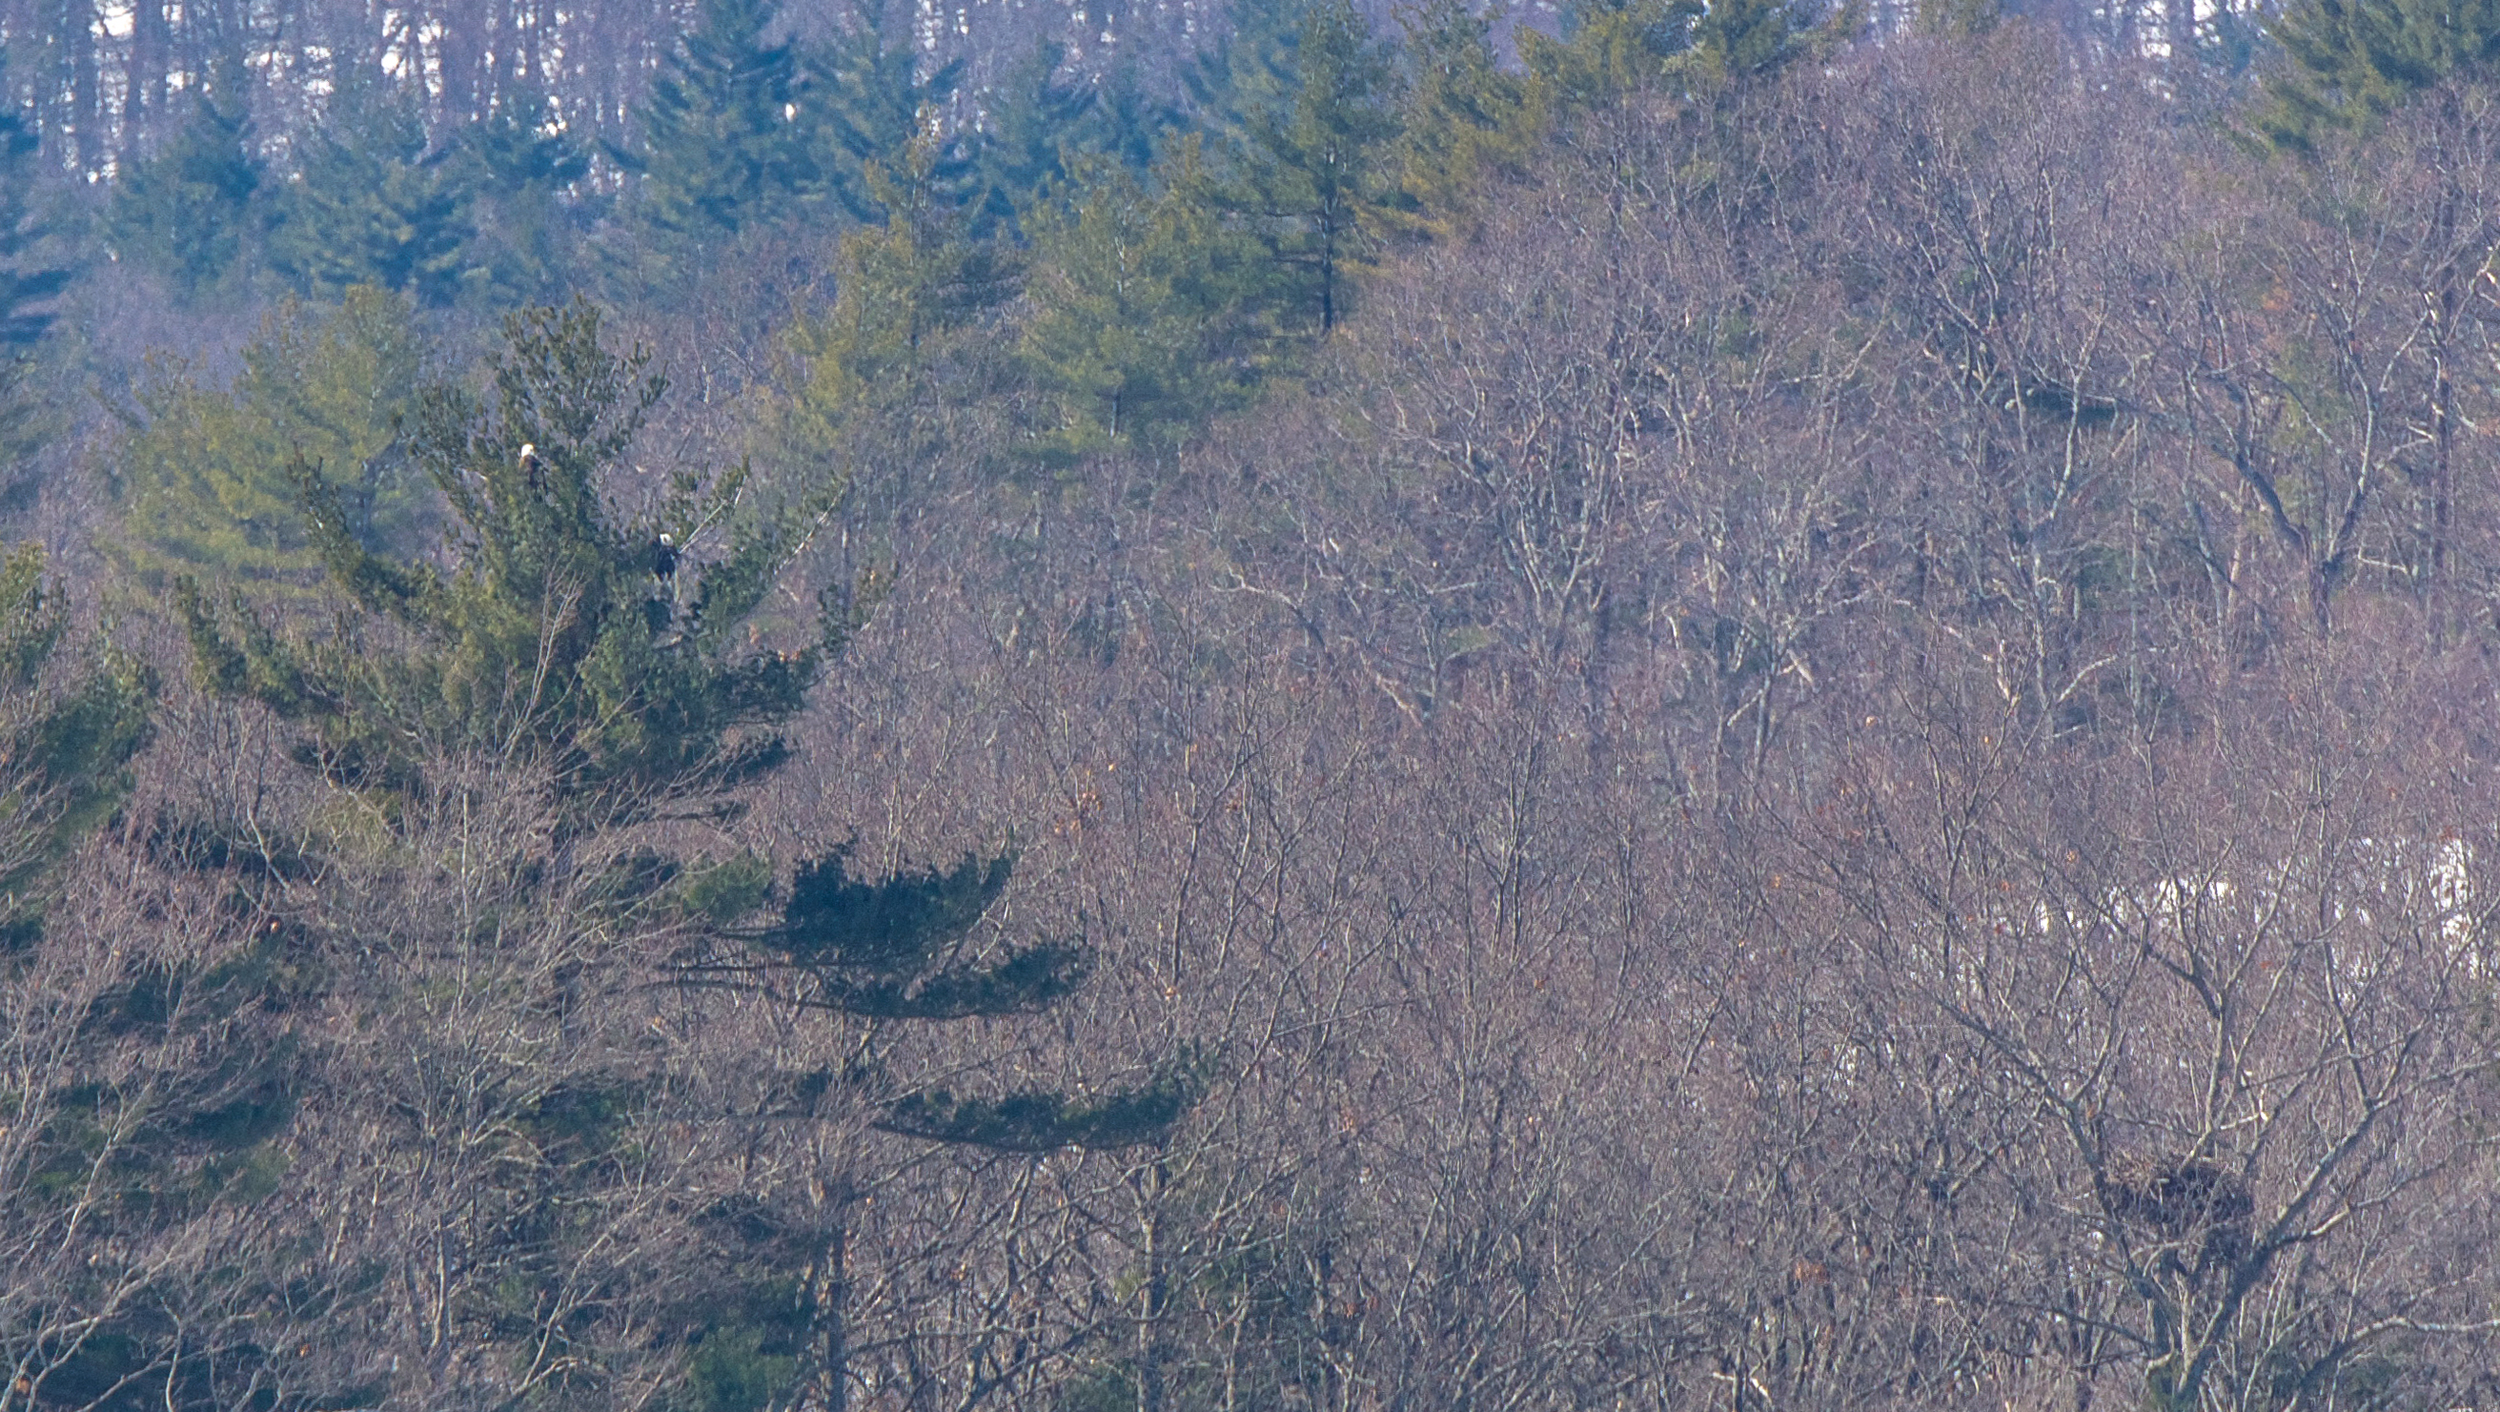 In early March the Quabbin's bald eagle population get started working on their nests.